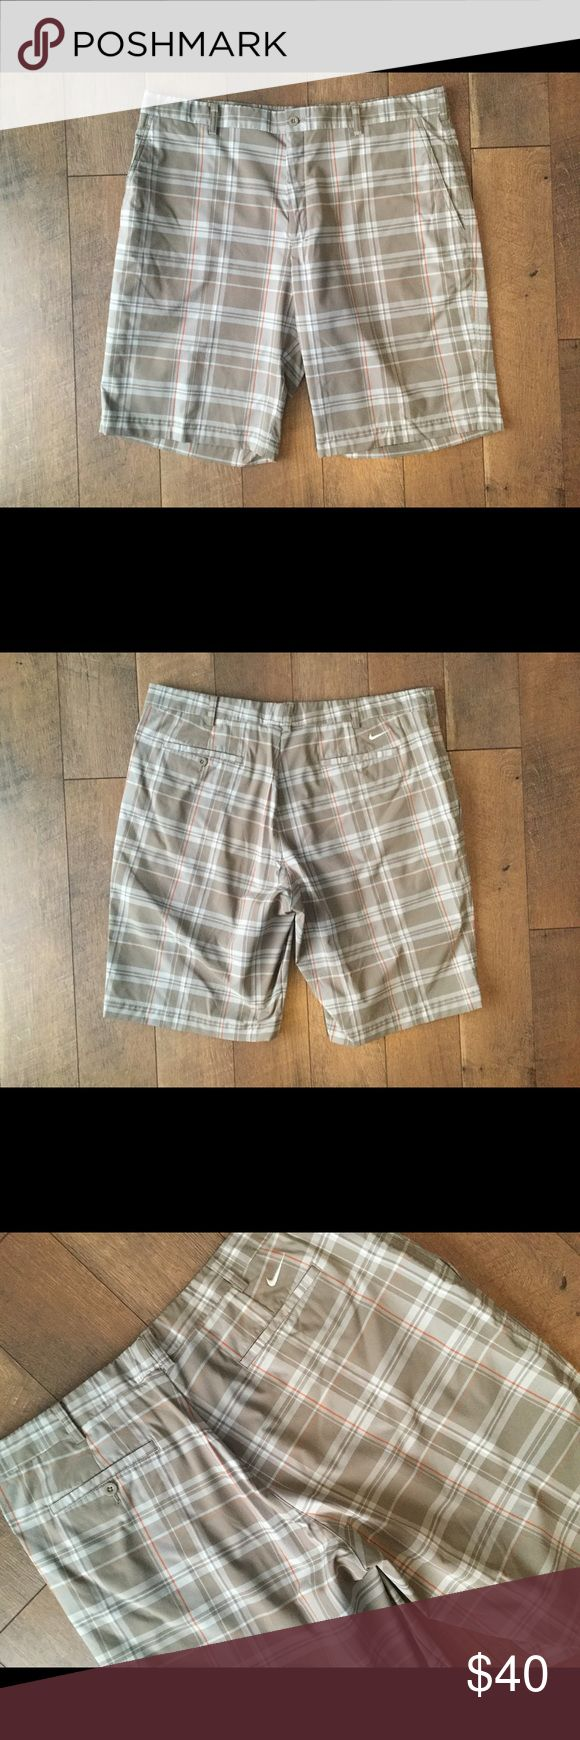 Nike mens shorts Excellent condition Nike Shorts